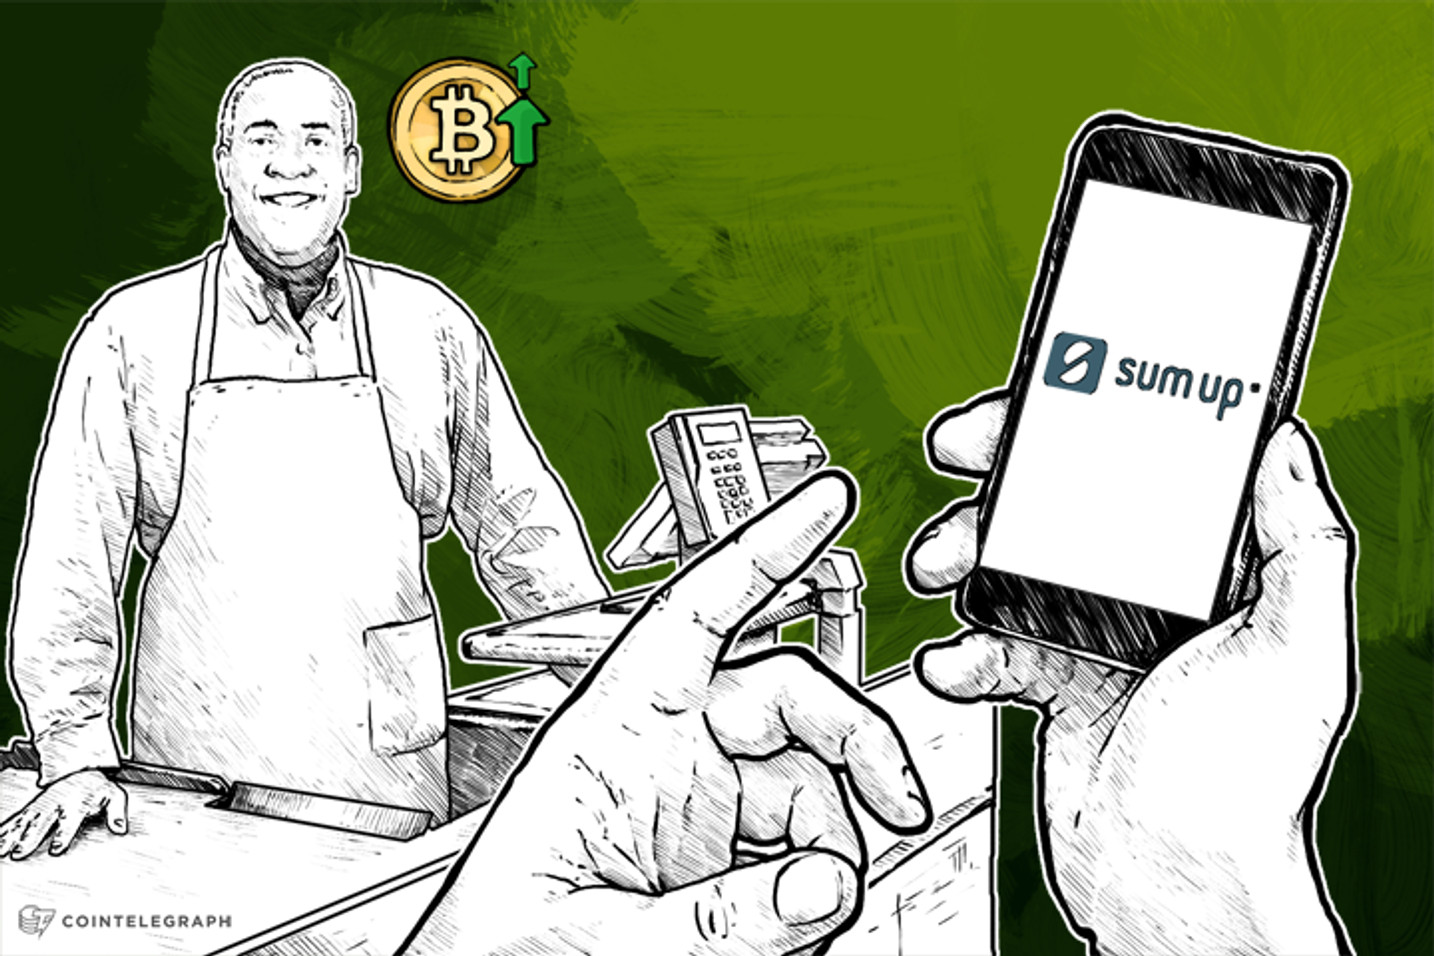 BitPay Enables One Tap Mobile Payments with New Bitcoin Checkout App